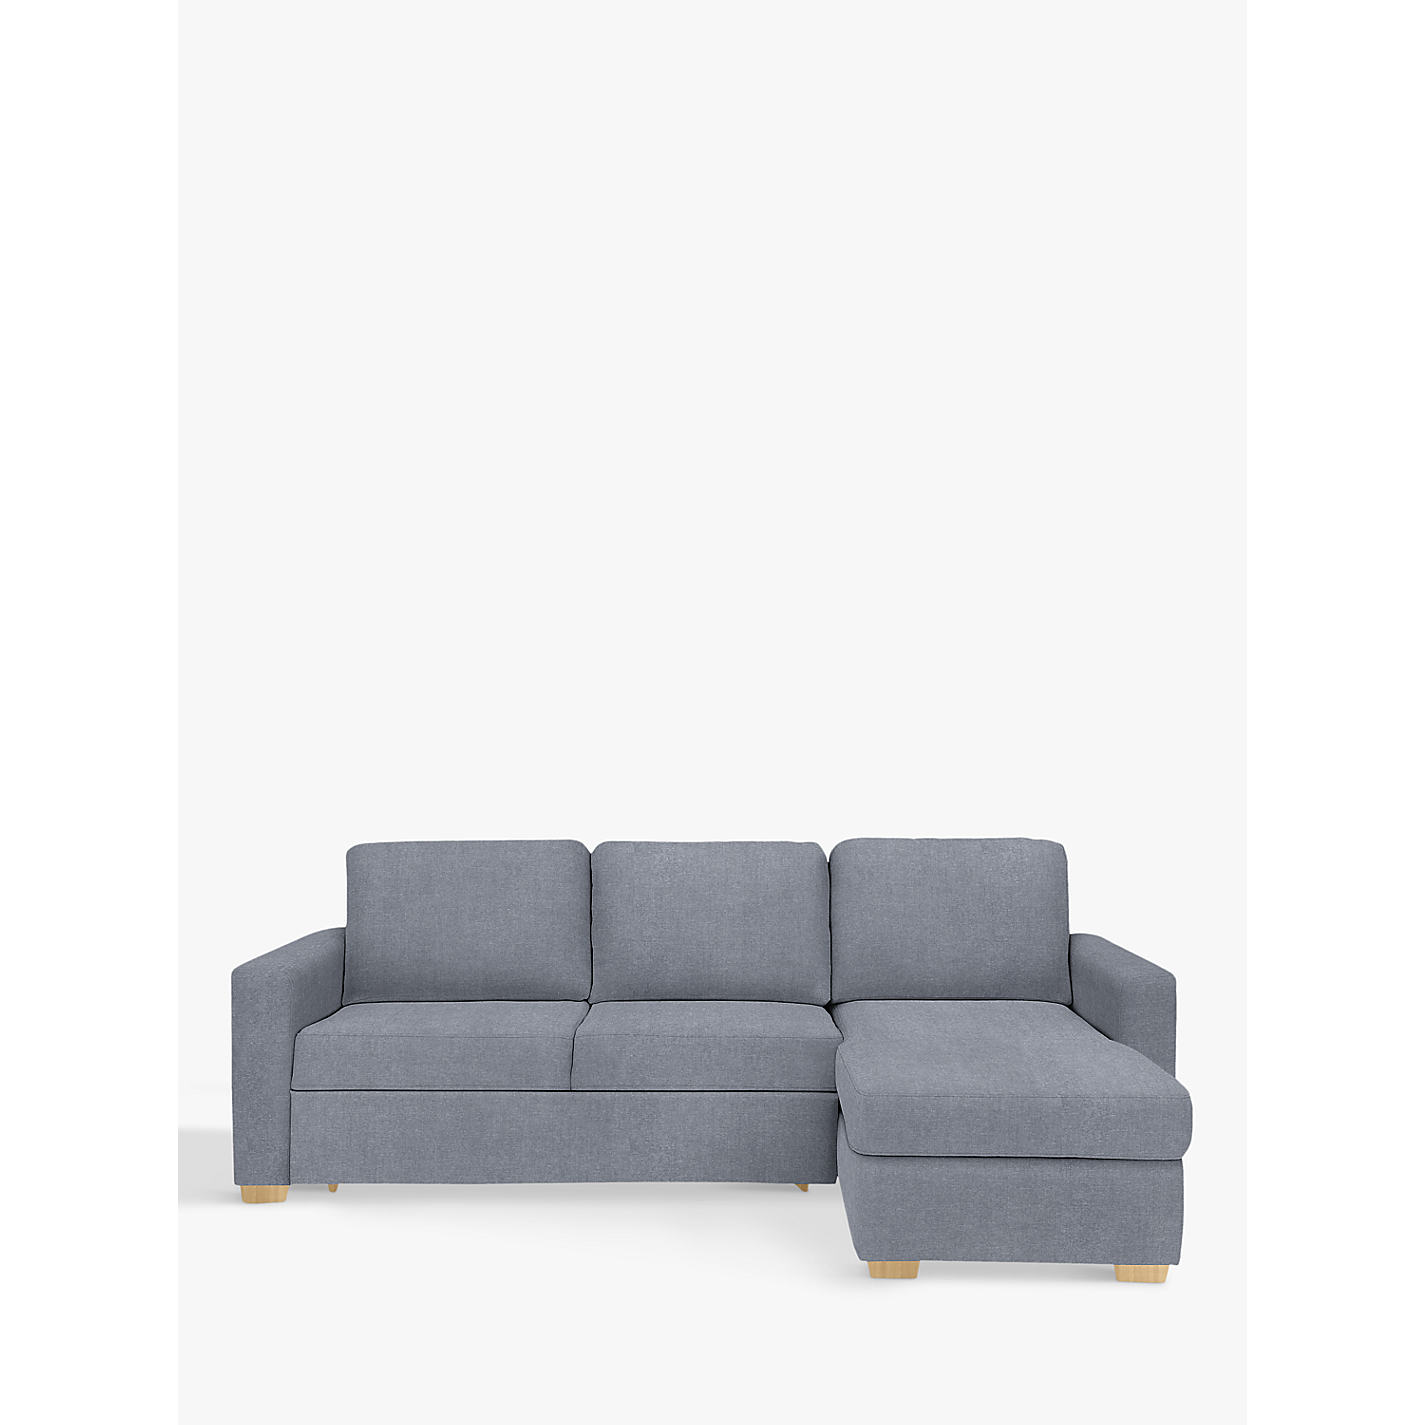 Buy John Lewis Sacha Large Sofa Bed with Foam Mattress, Light Leg, Erin Grey